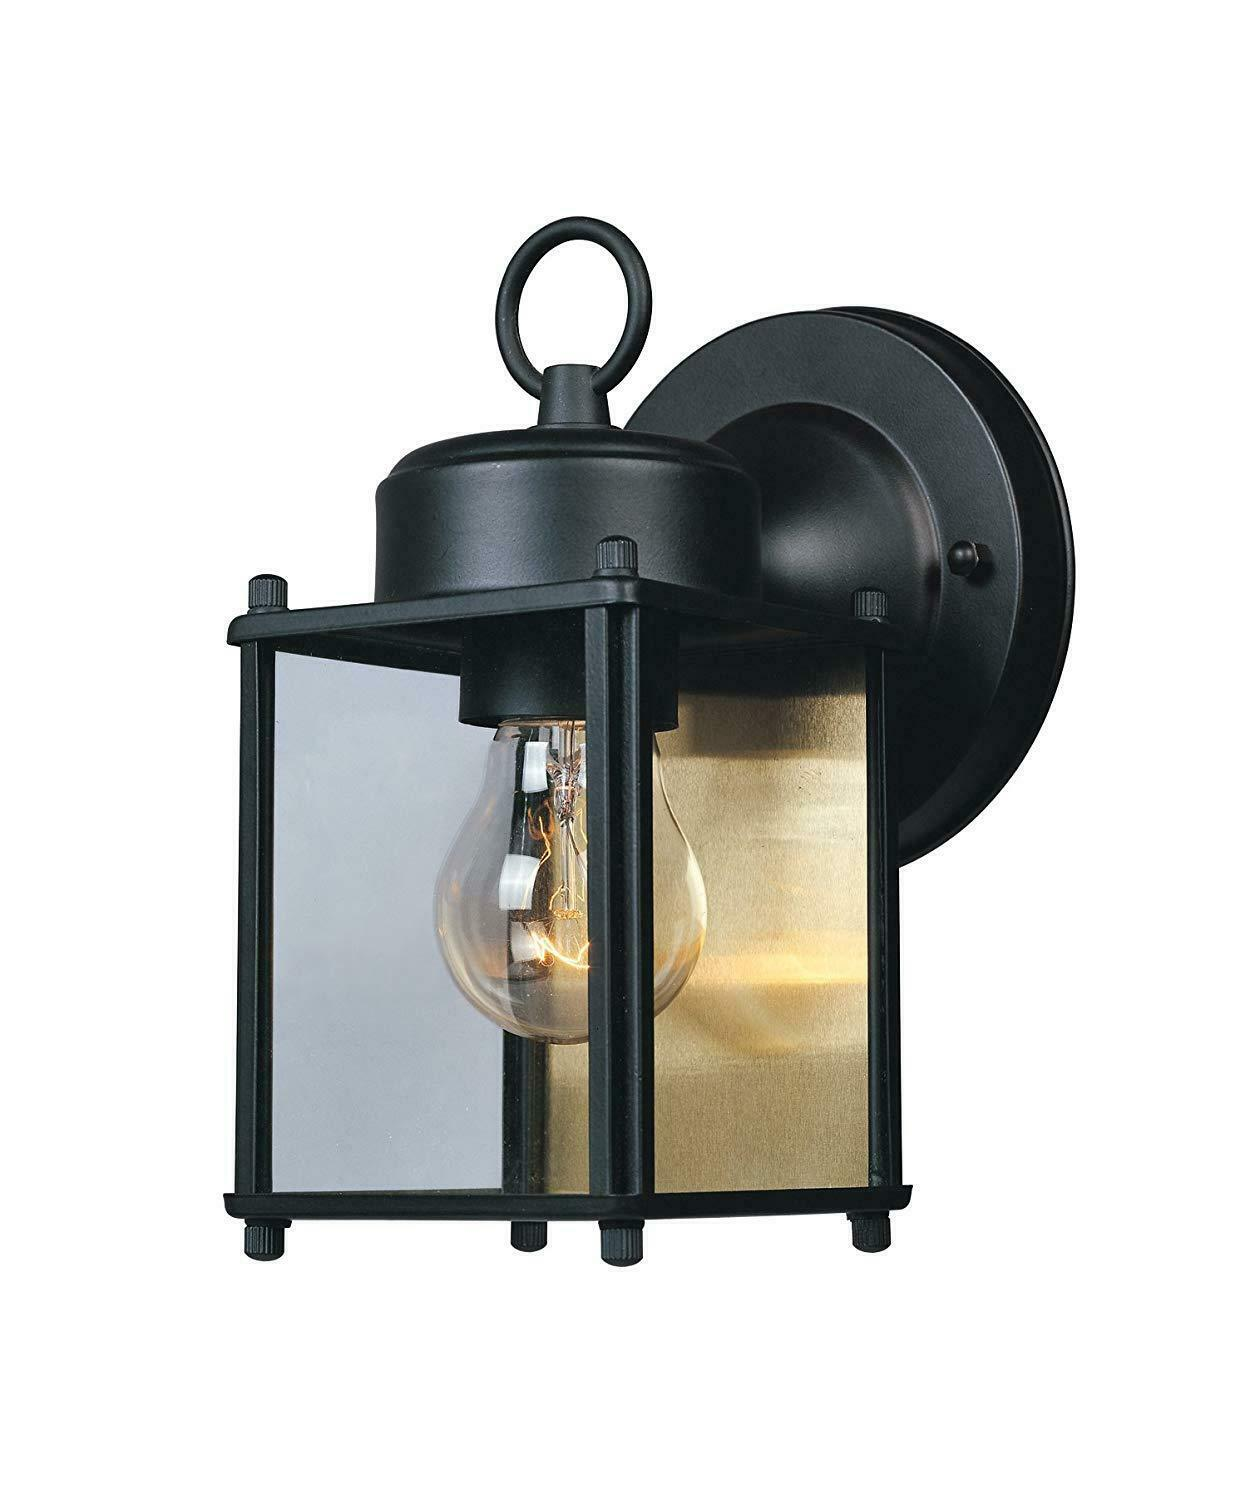 Motion Sensor Porch Light Fixture: Top Motion Sensor Porch Light Wall Lamp Fixture Outdoor